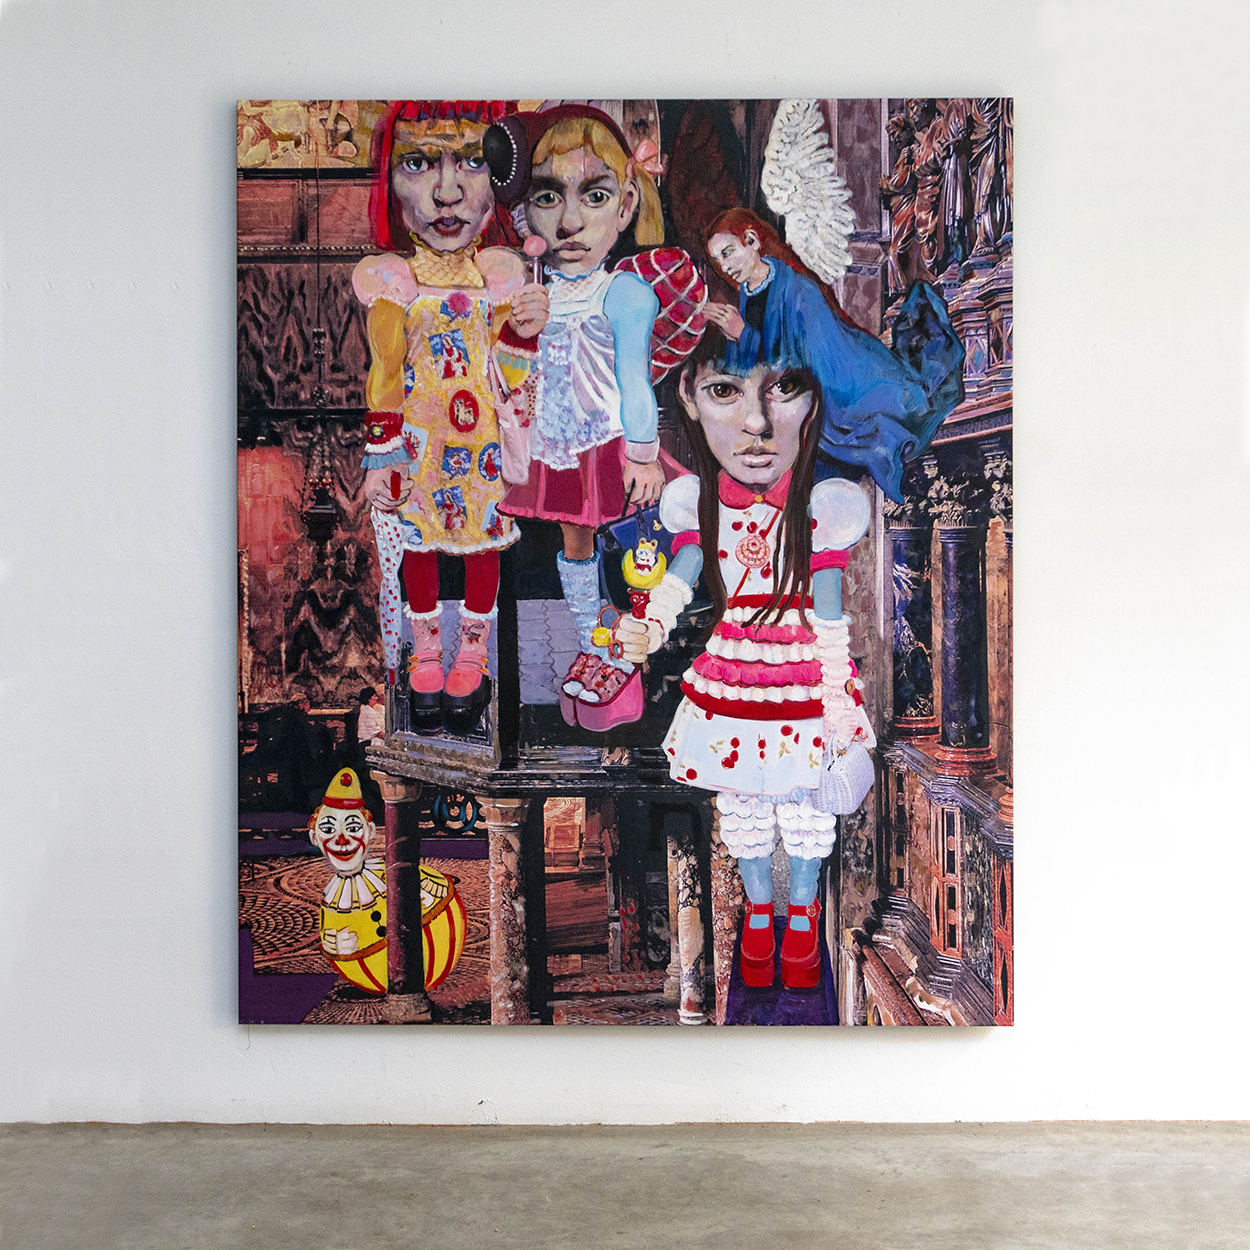 SLANGEN - Cosplay#10,180x150cm,acryl on collage print on canvas,2019_VIERKANT